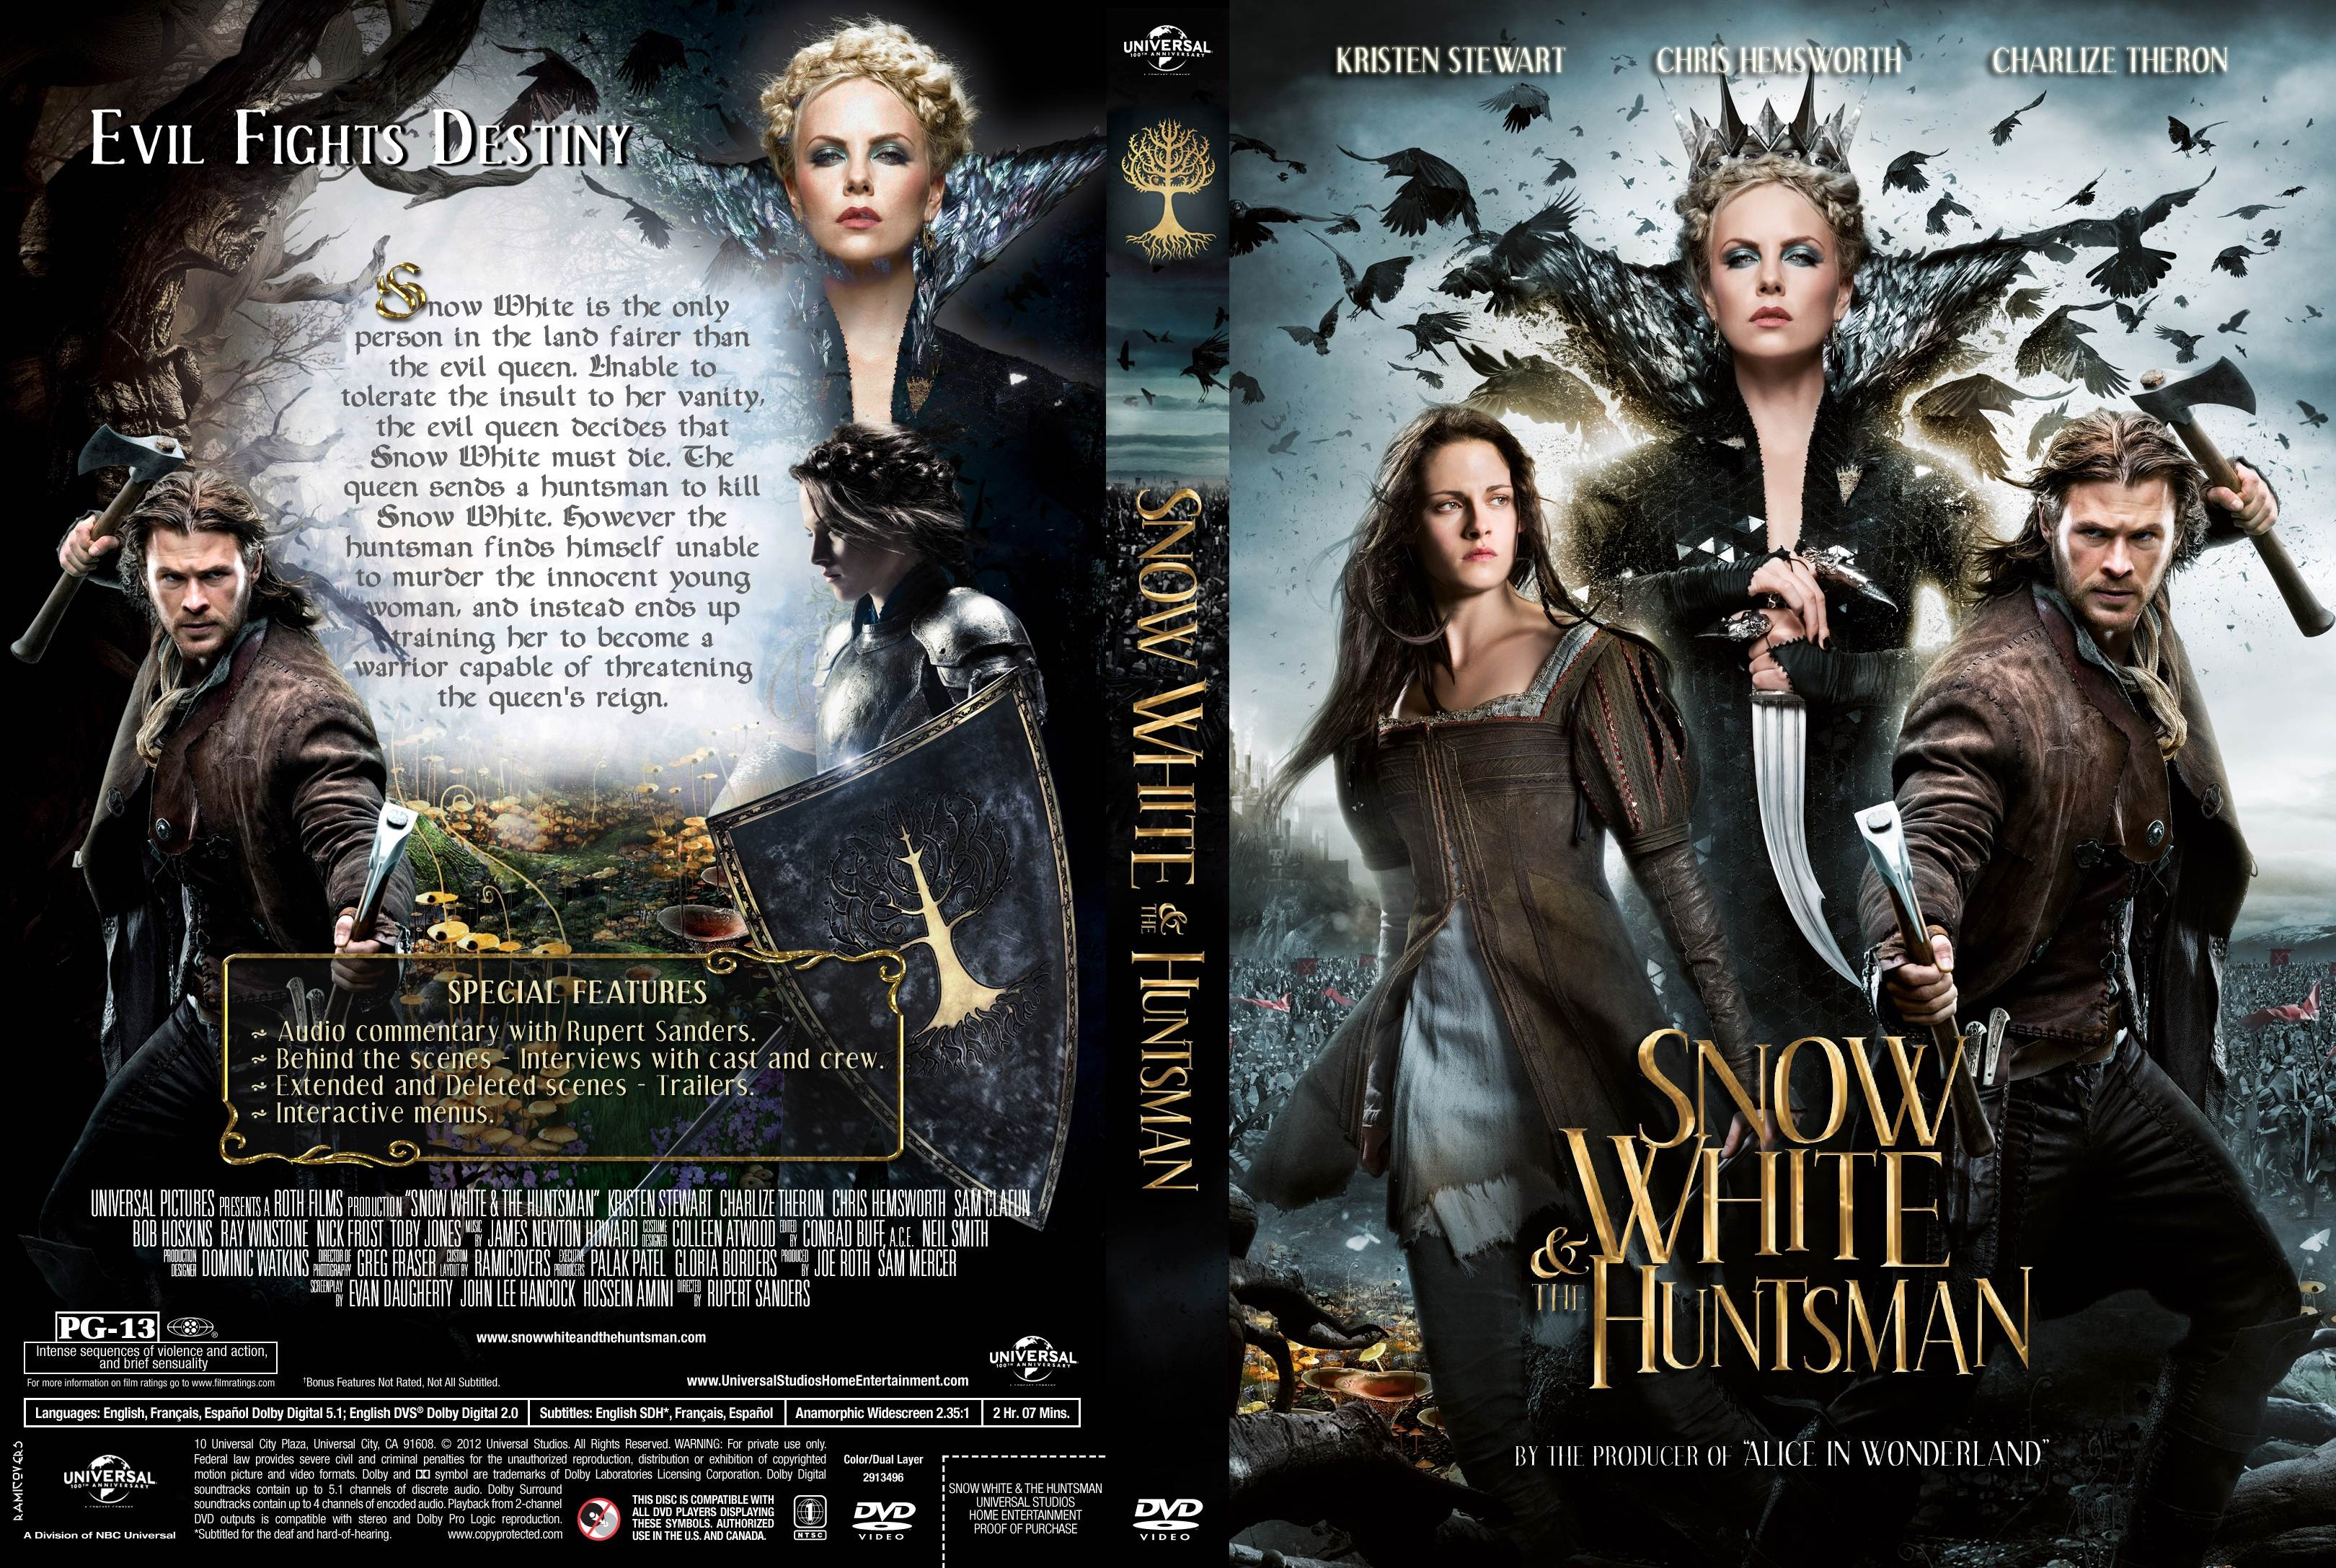 White snow huntsman english download and the subtitles